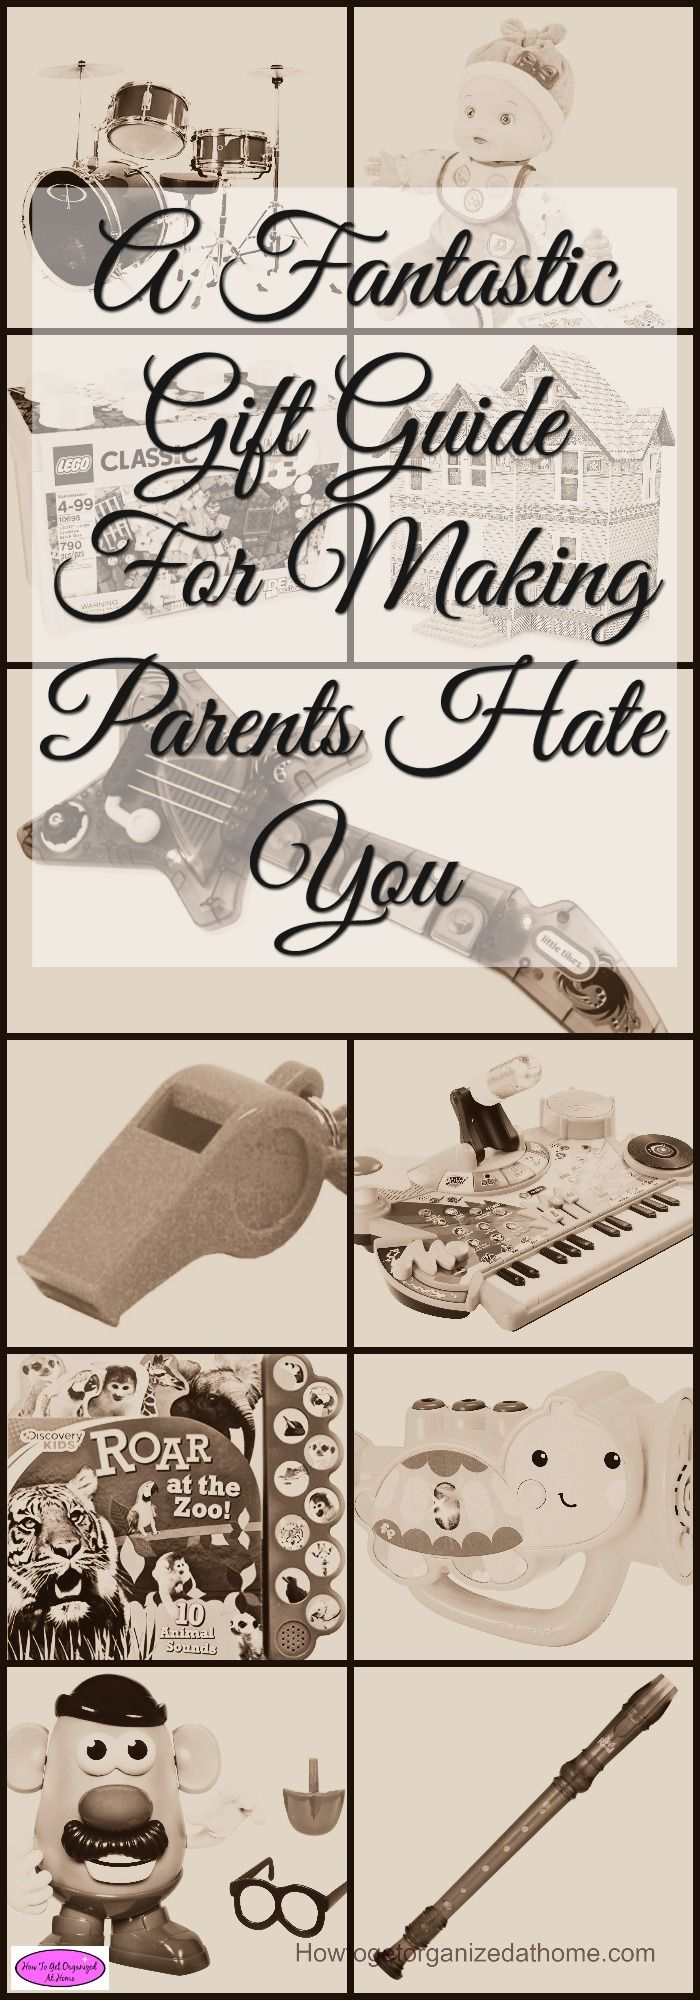 A great gift guide for making parents hate you because you buy that toy that will drive them crazy! It is fun to watch their faces too!